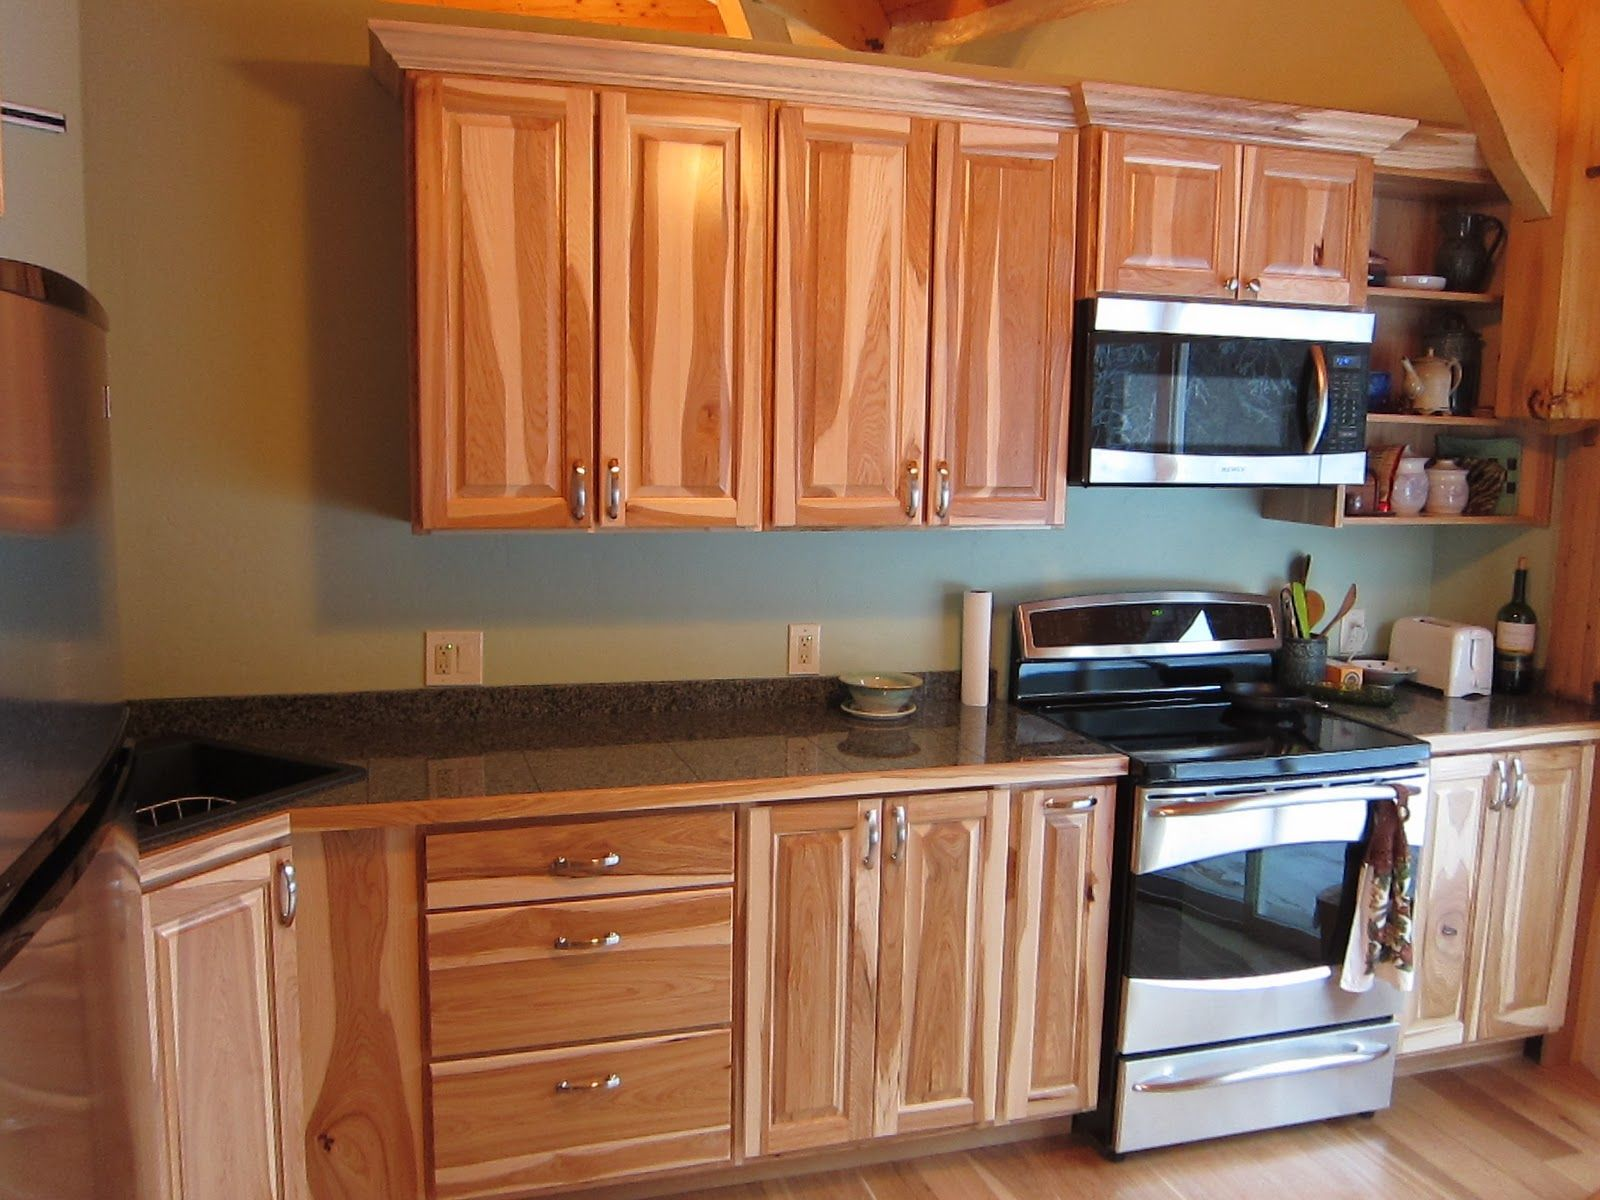 hickory shaker style kitchen cabinets table rugs at yahoo search results my